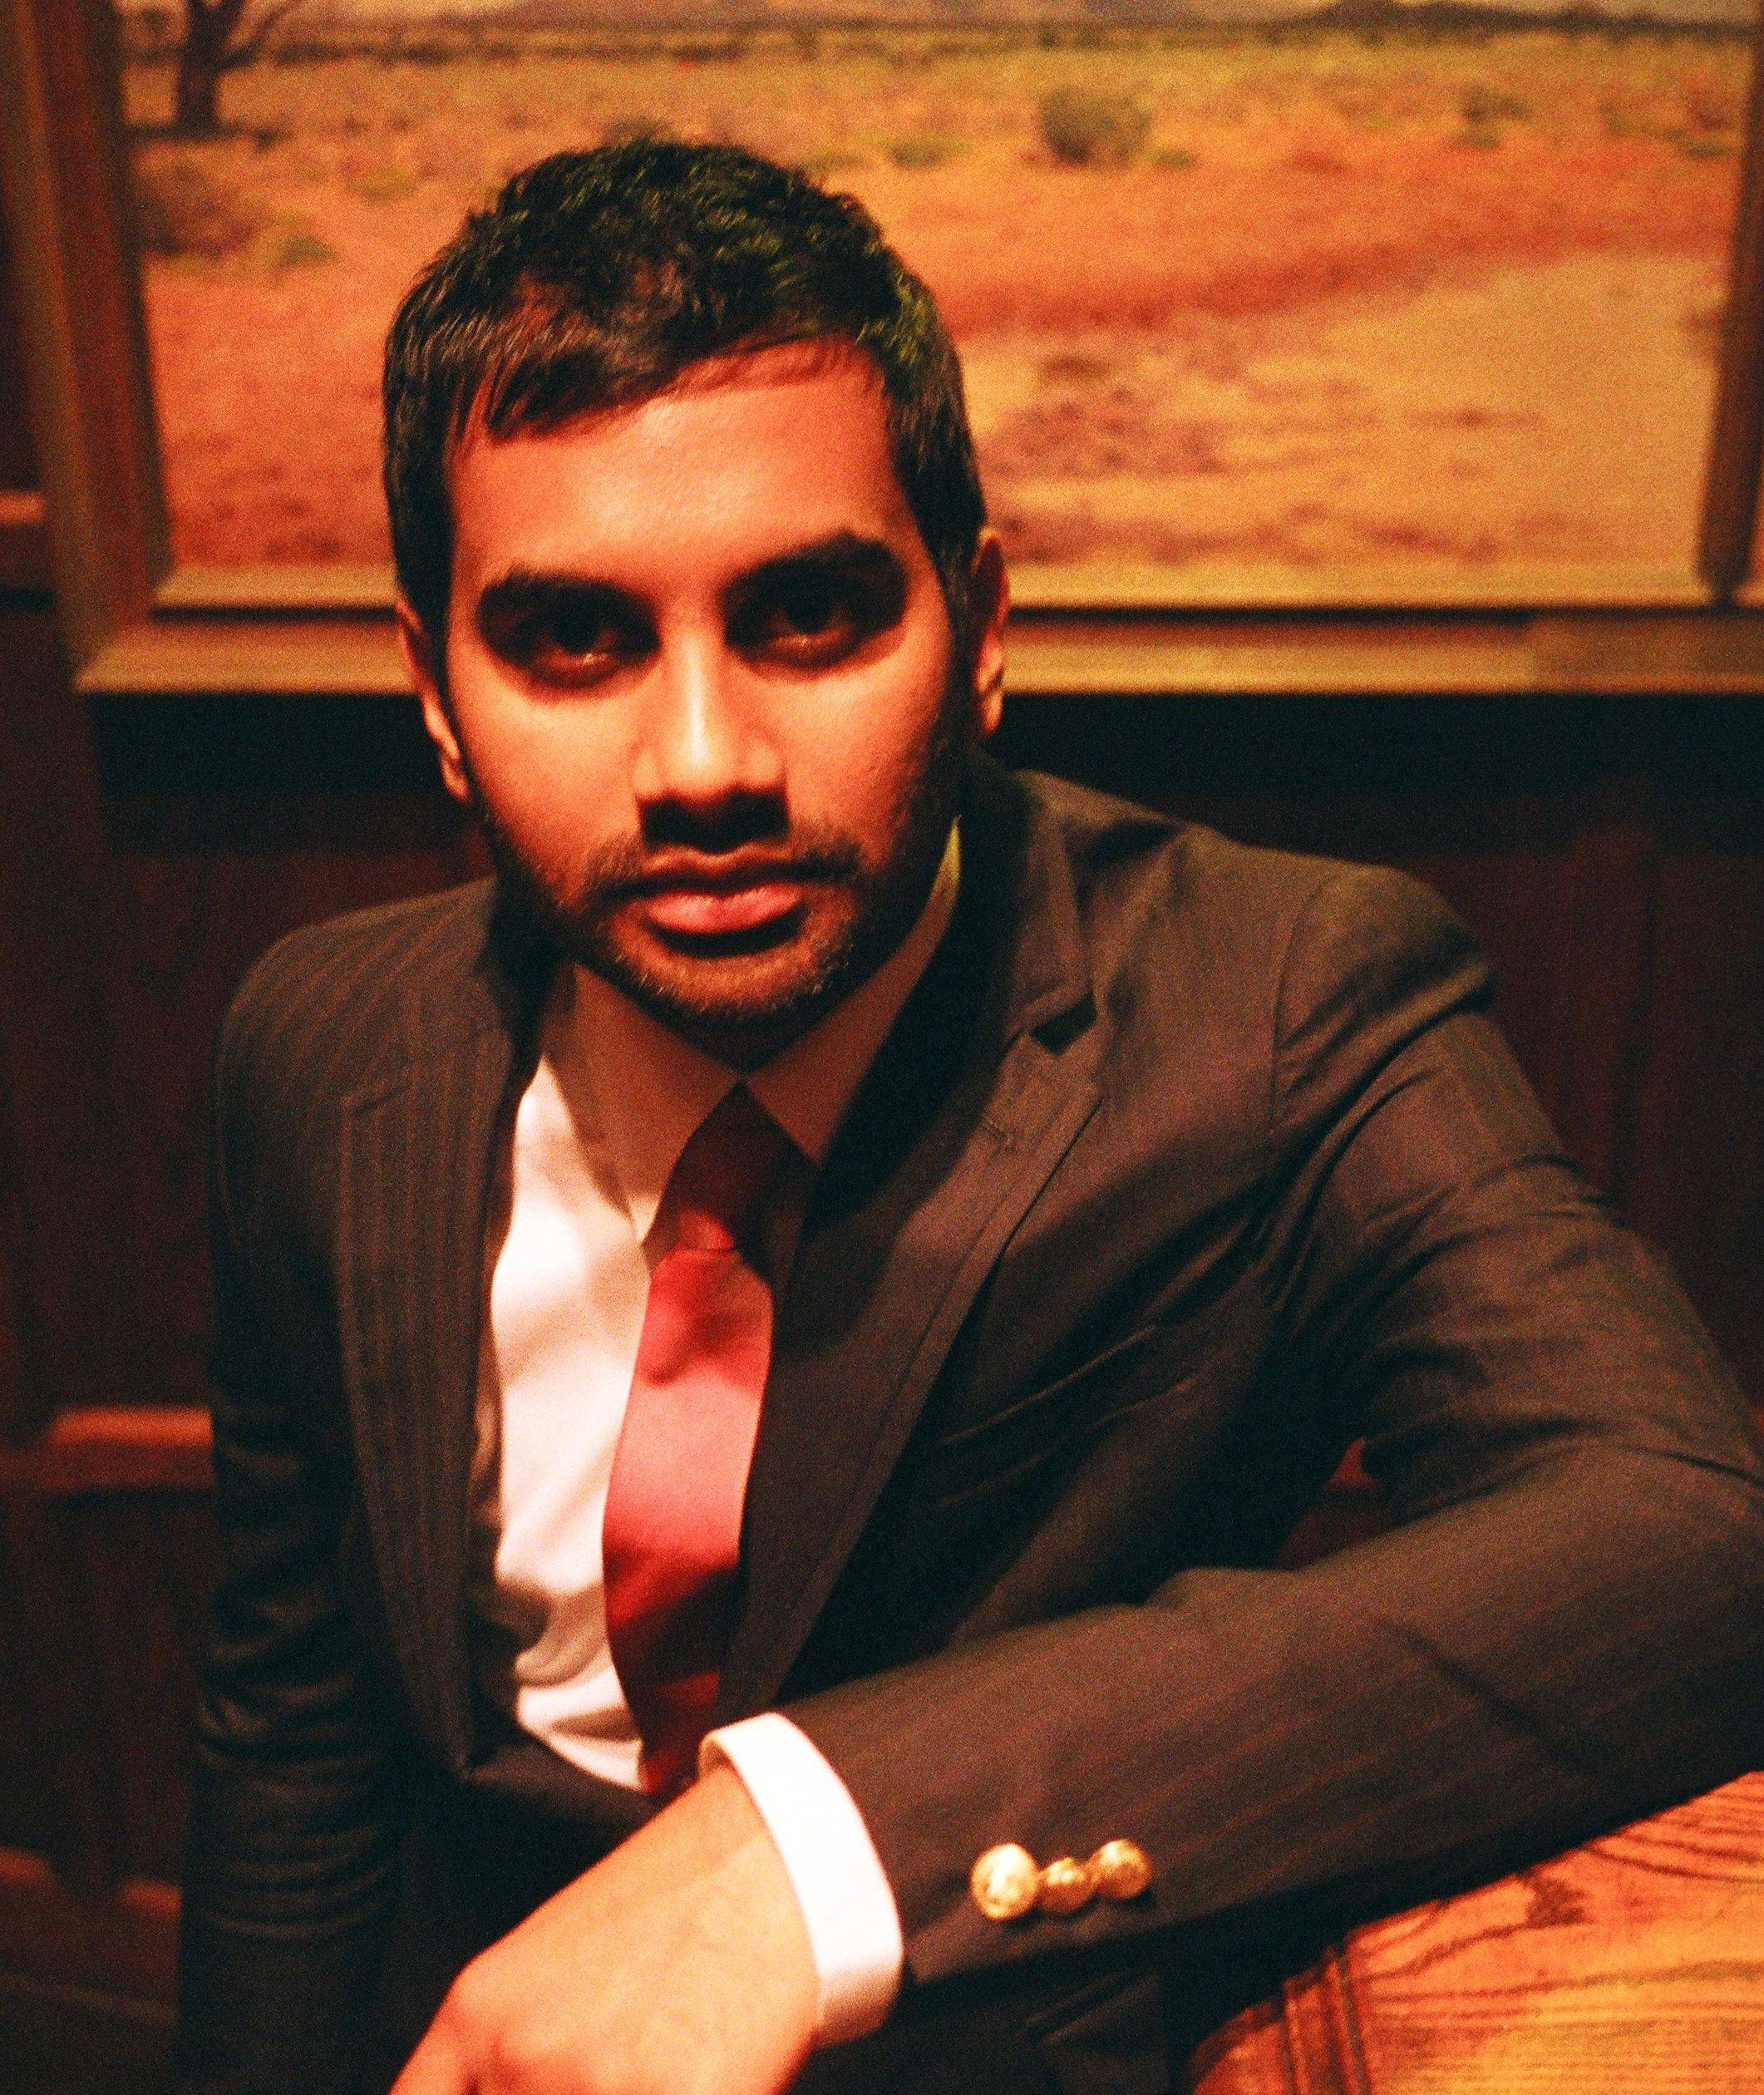 Aziz Ansari plays 7:30 and 10:30 shows Friday, June 15, at the Chicago Theatre.